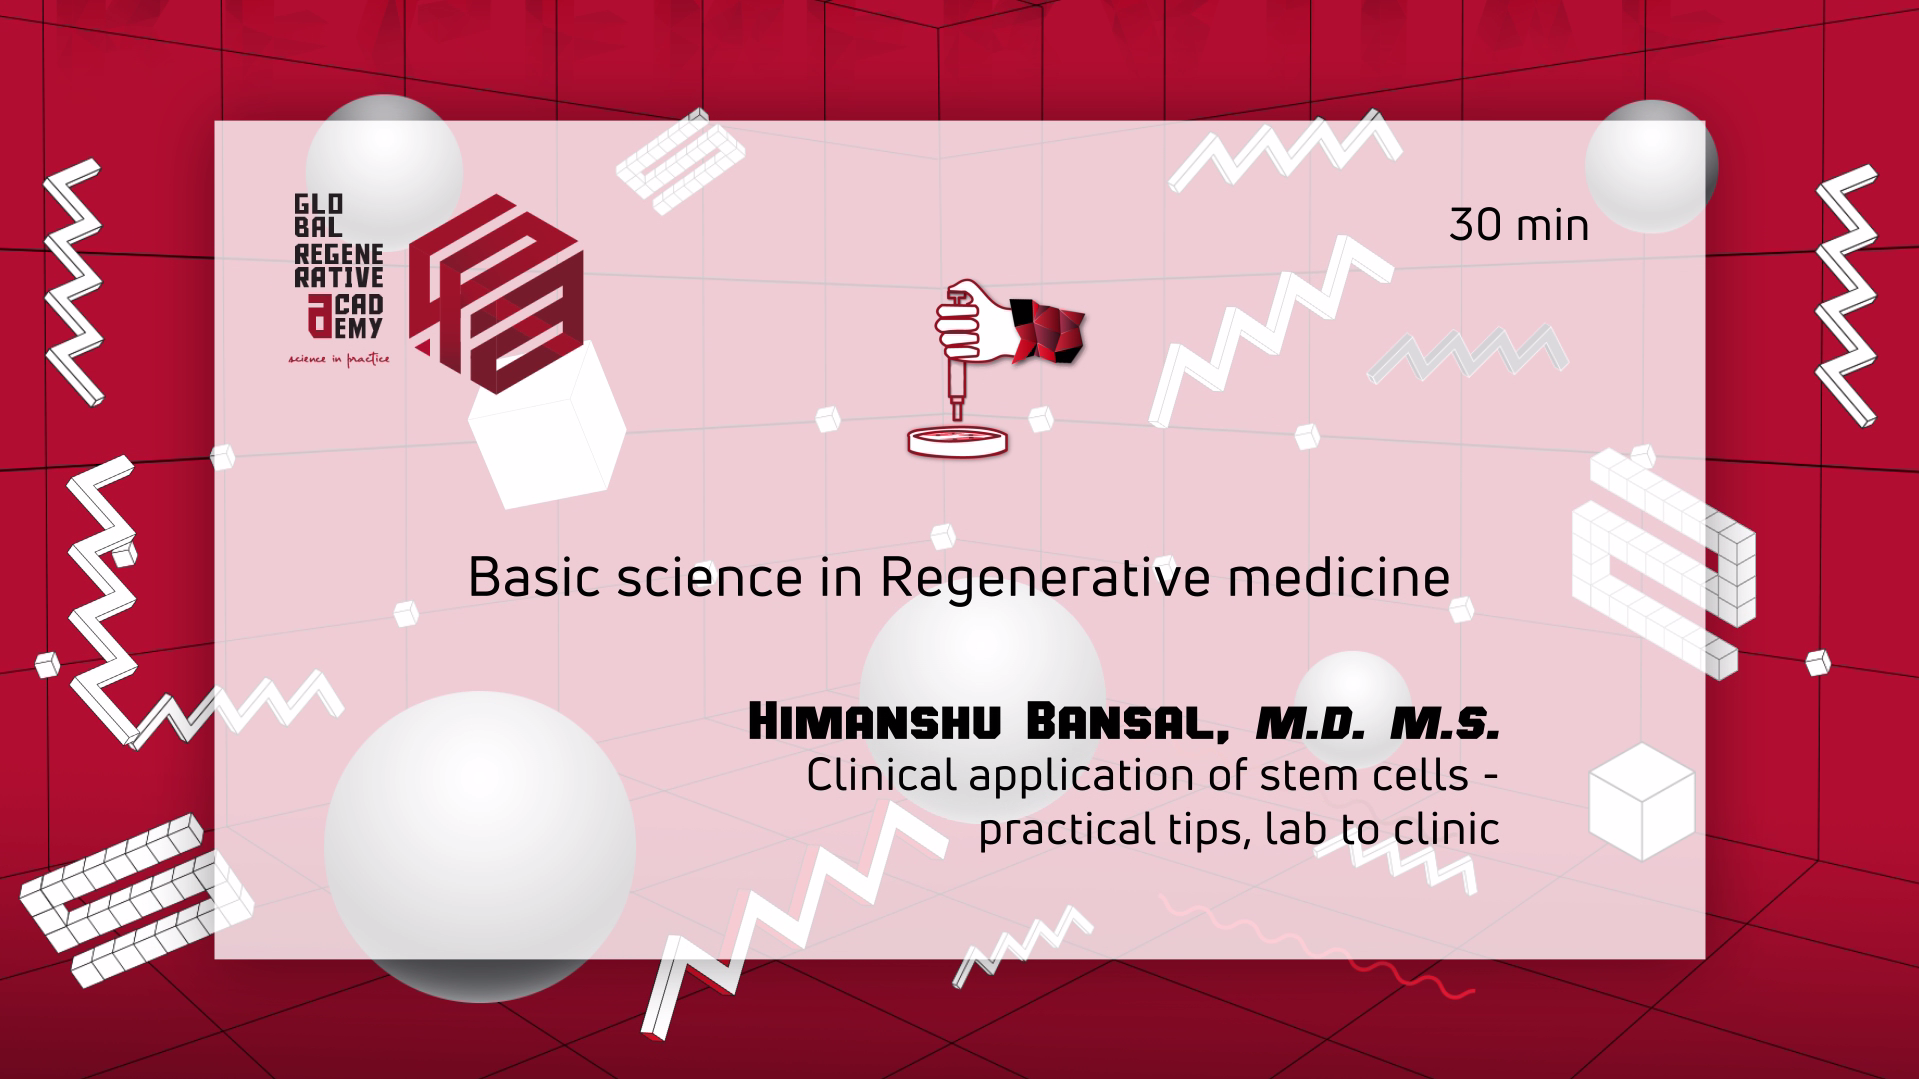 A powerpoint slide about basic science in regenerative medicine by Himanshu Bansal, M.D.